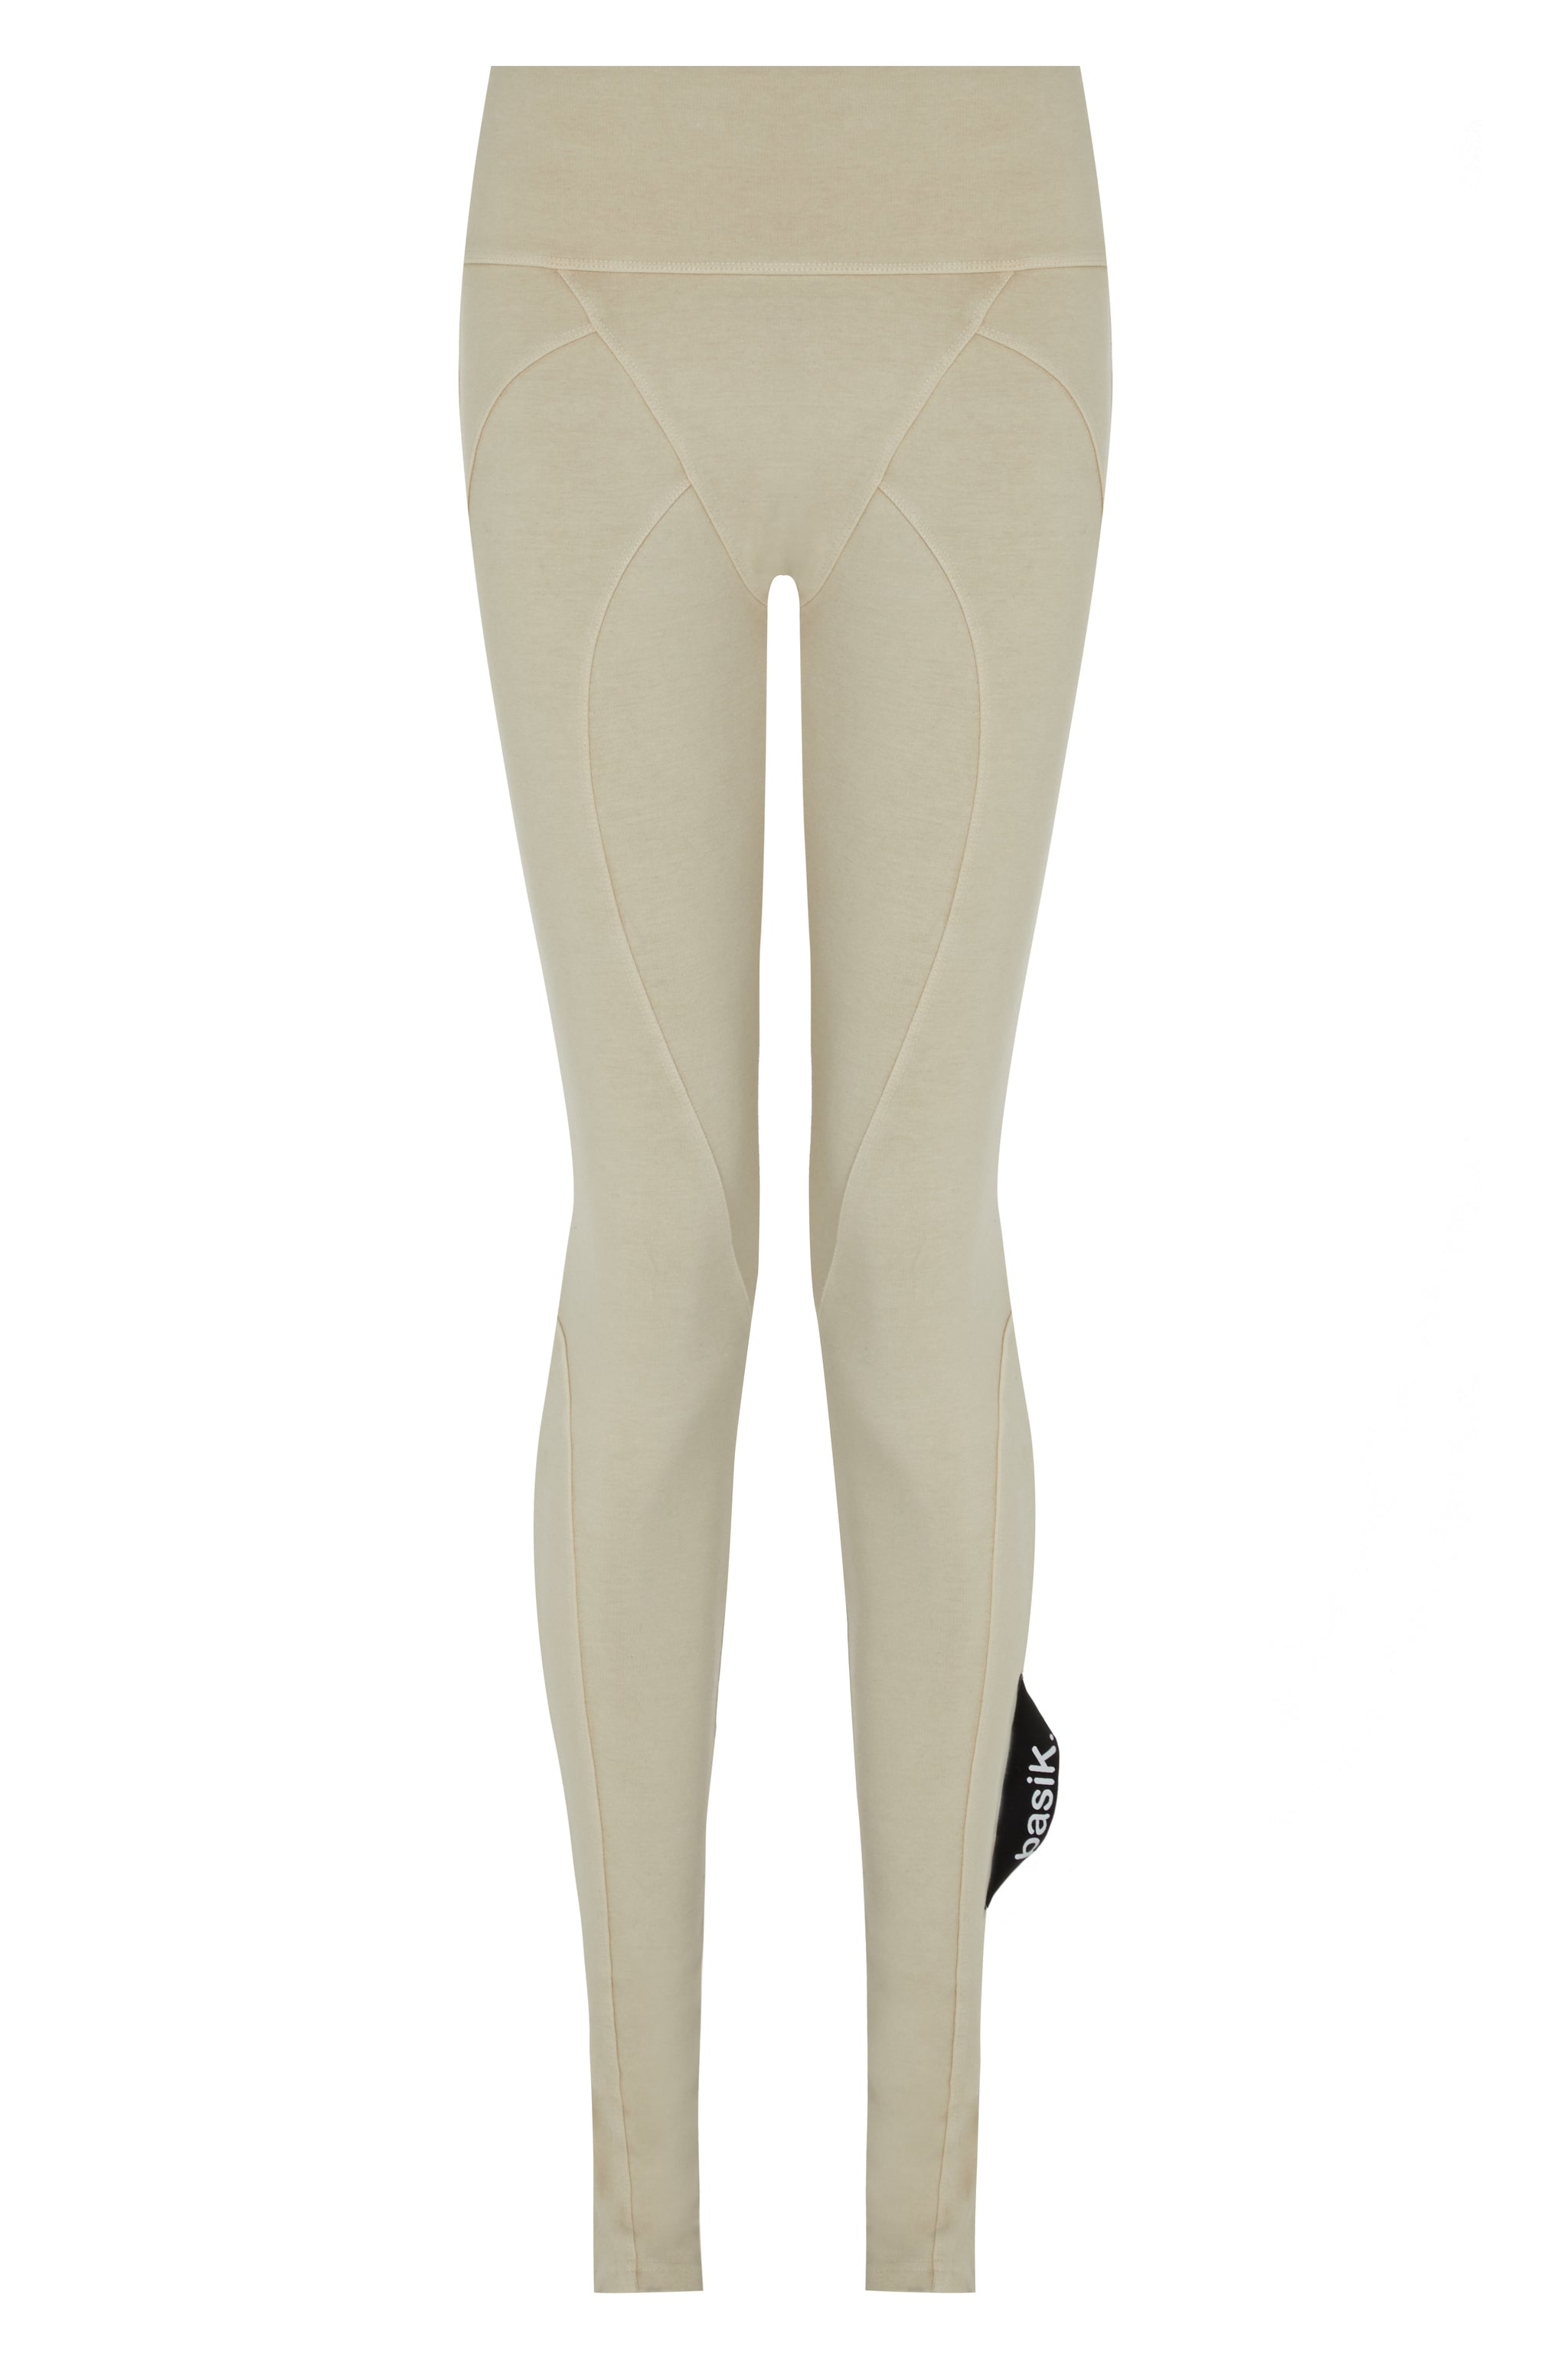 basiK• Multi-Panelled Leggings in Oatmeal